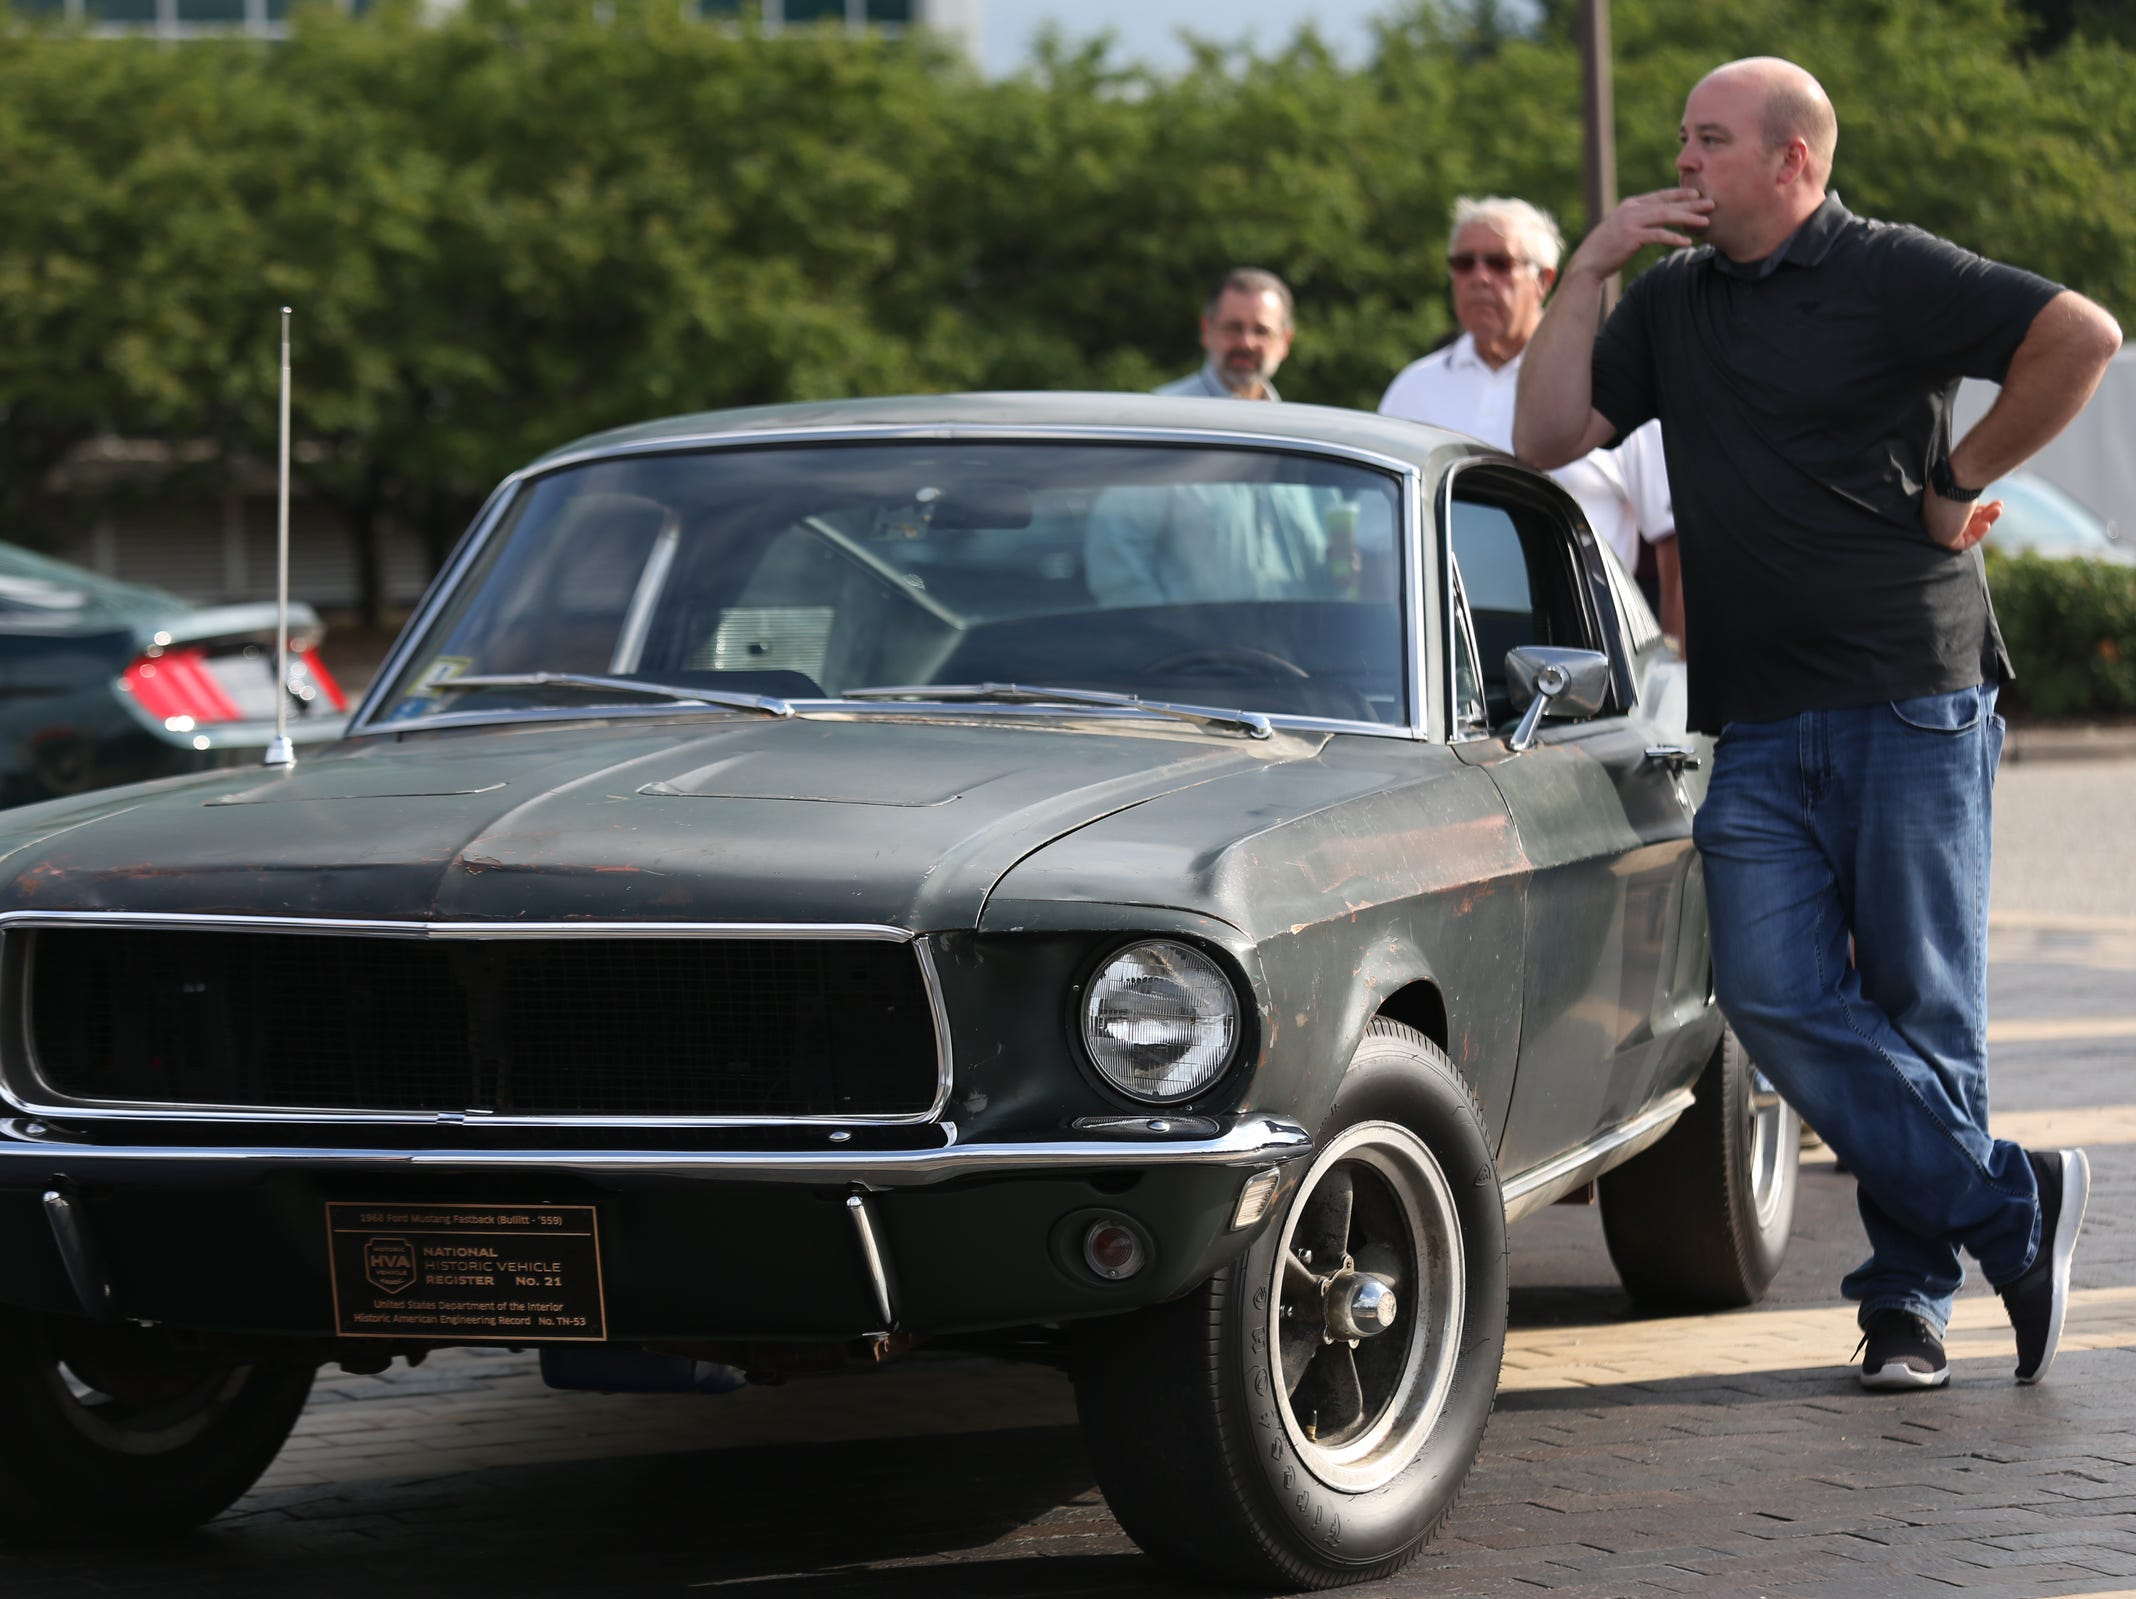 Sean Kiernan, of Nashville, stands next to the Ford Mustang GT 390 driven by Steve McQueen in the cult classic film Bullitt that his family has owned for 66 years while it is displayed during a Ford event celebrating the 10,000,000 Mustang built at the Ford Motor Company World Headquarters in Dearborn on Wed., Aug 8, 2018.